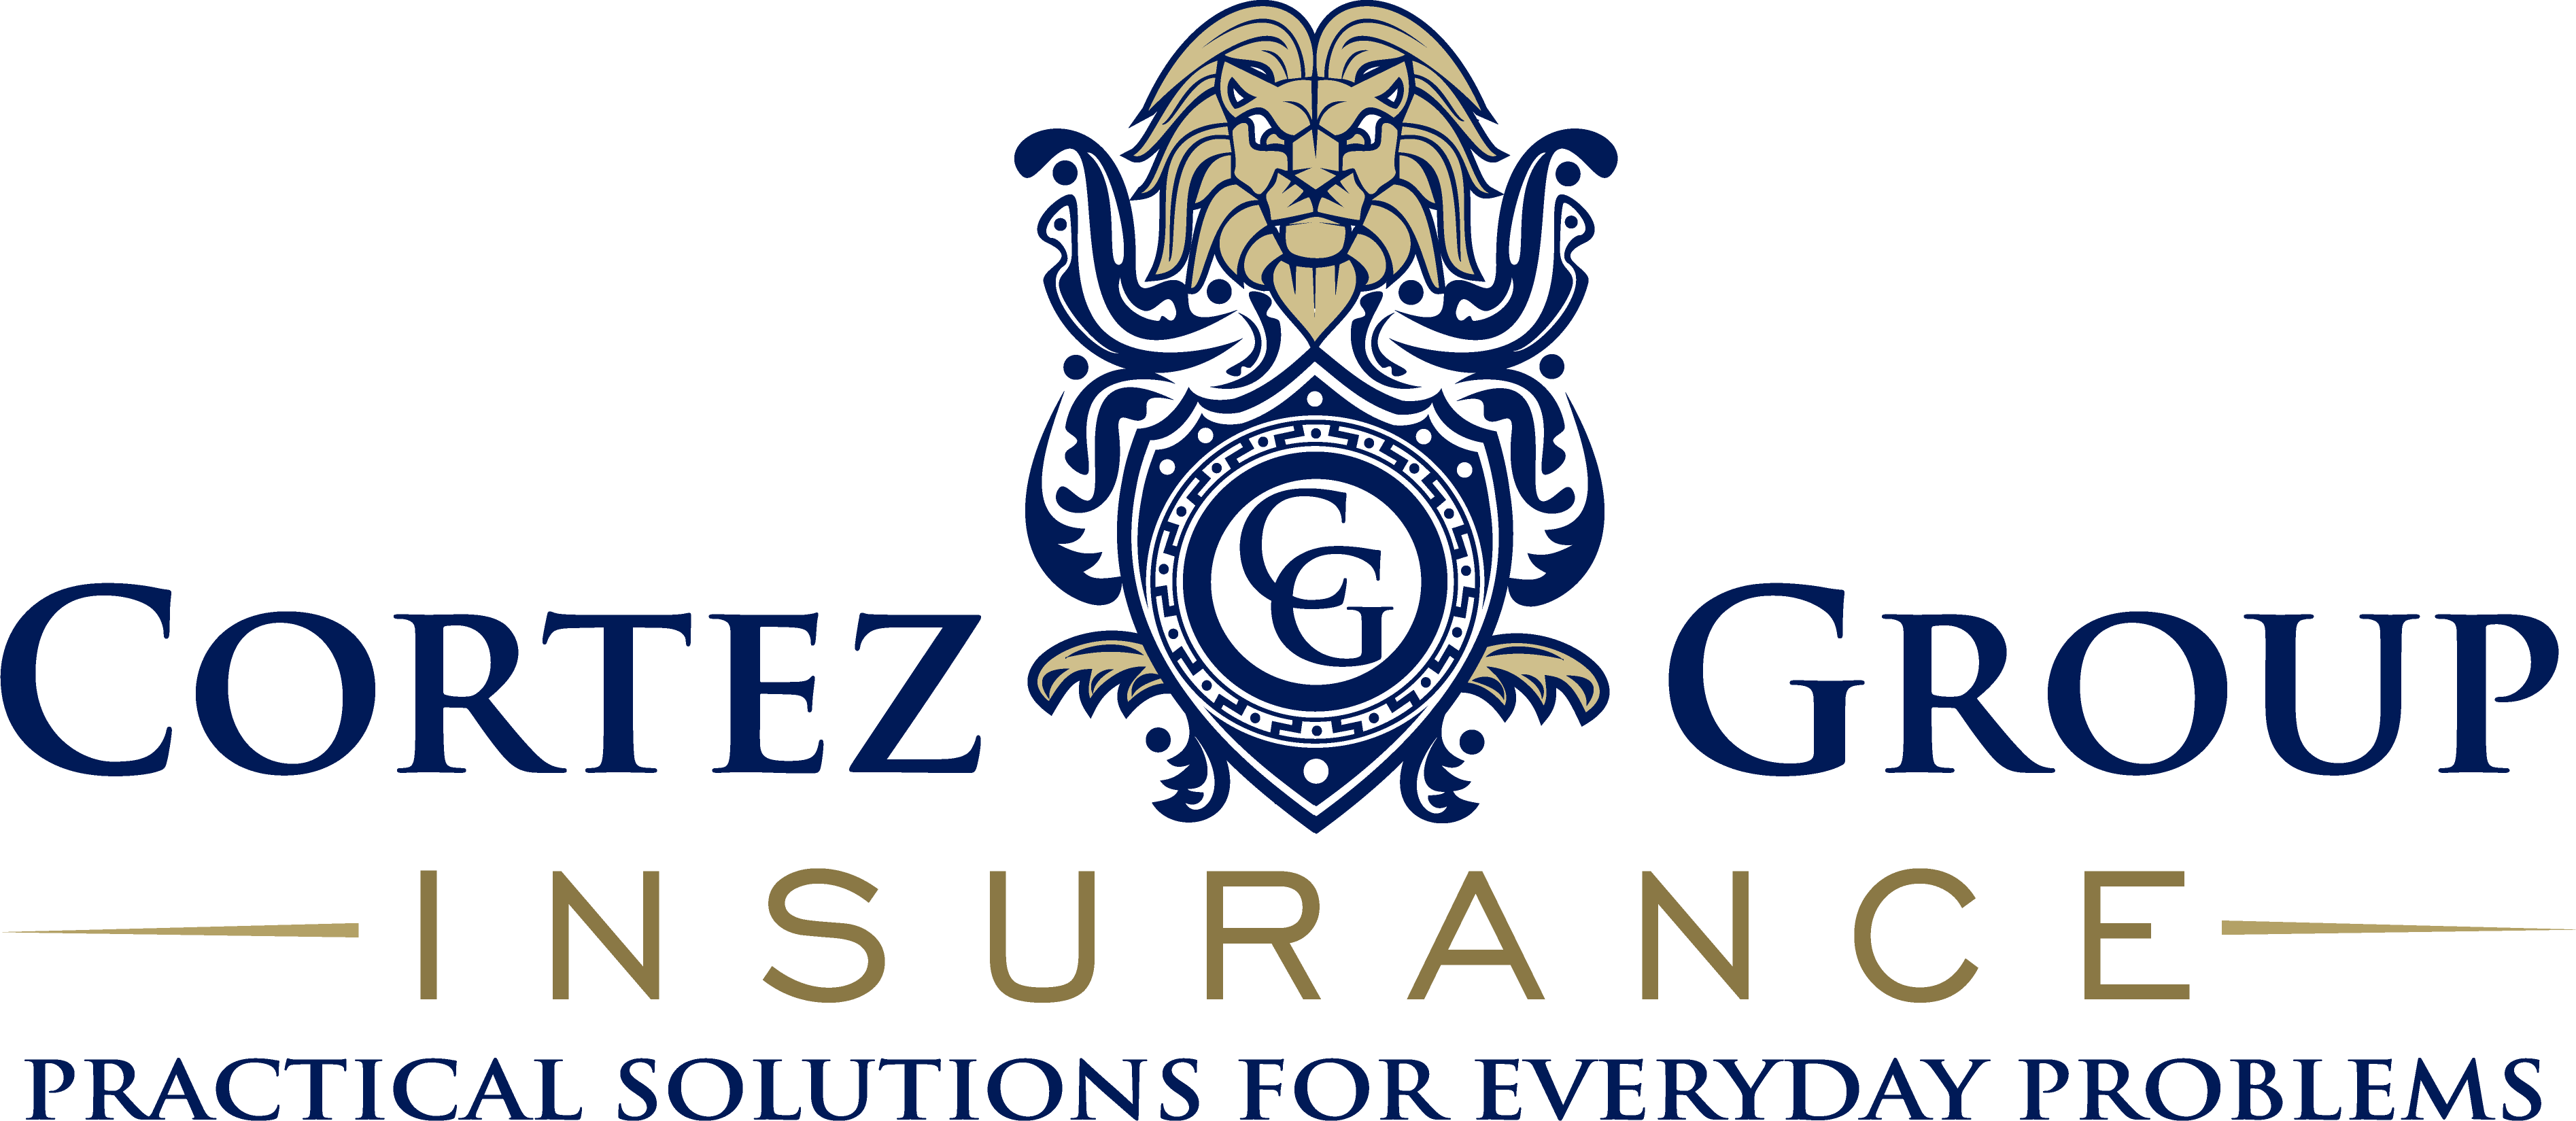 The Cortez Group, Inc Retina Logo